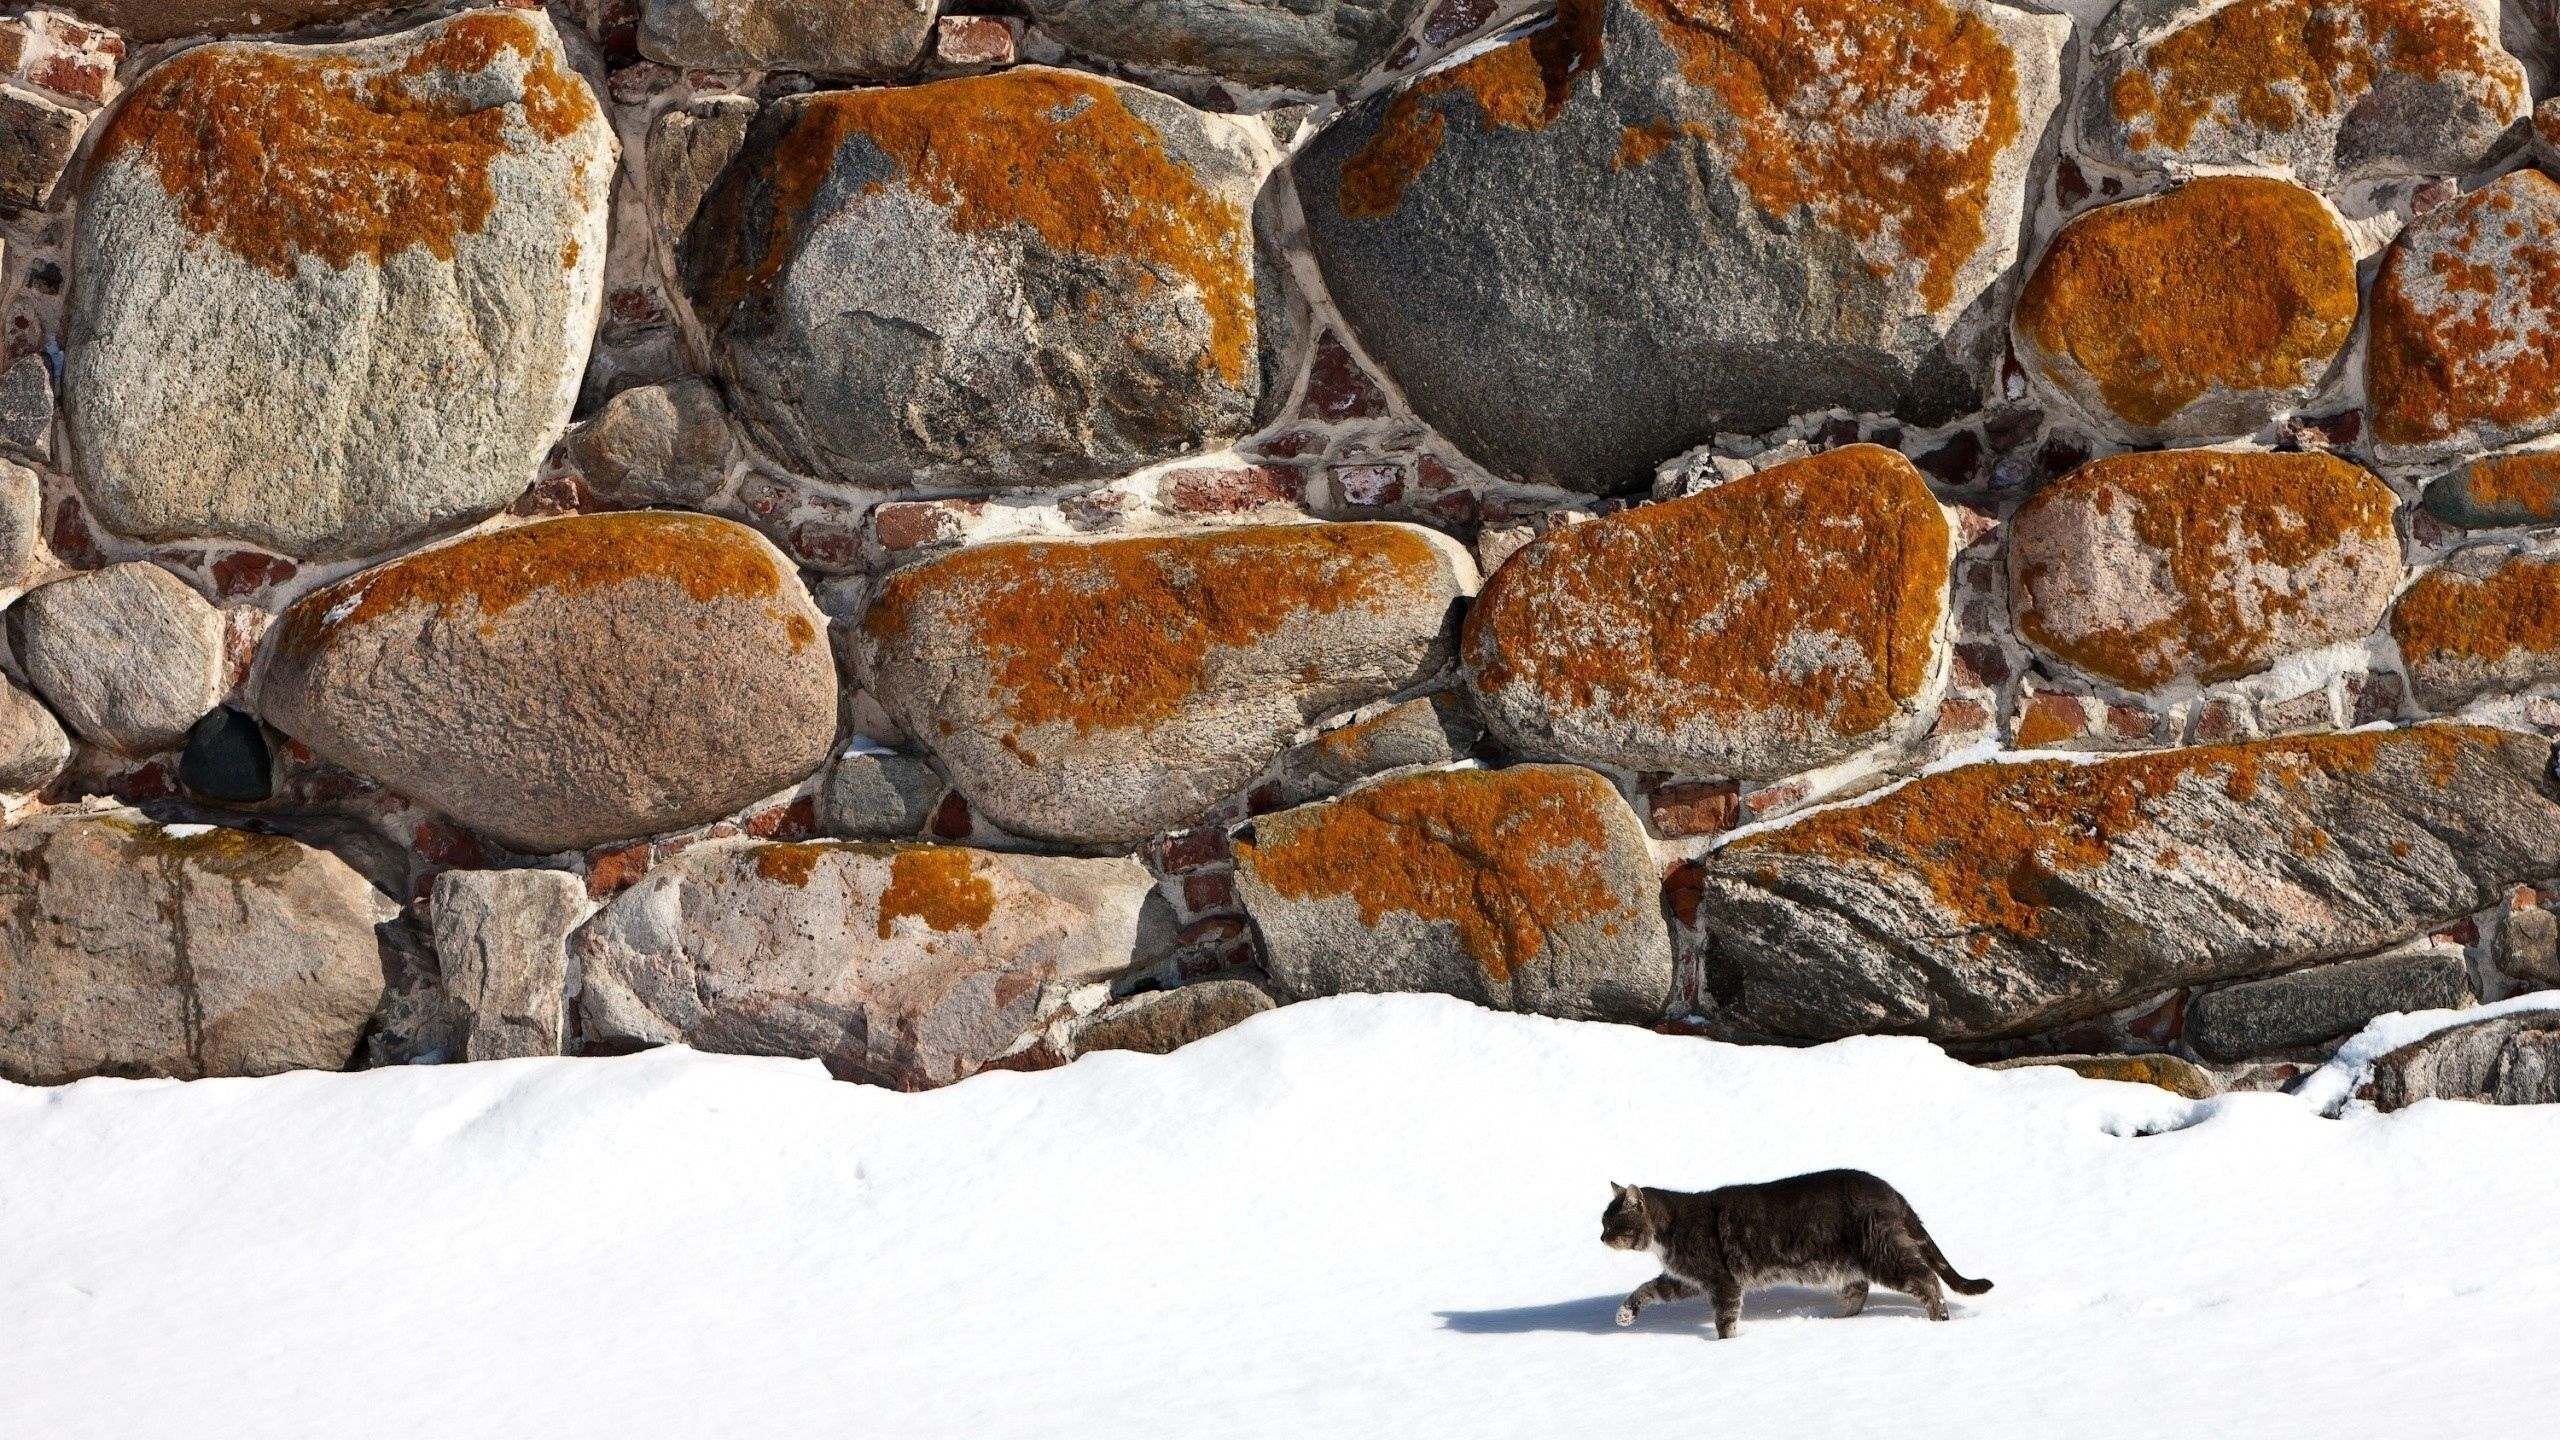 145058 download wallpaper Animals, Cat, Stroll, Snow, Wall, Stone screensavers and pictures for free